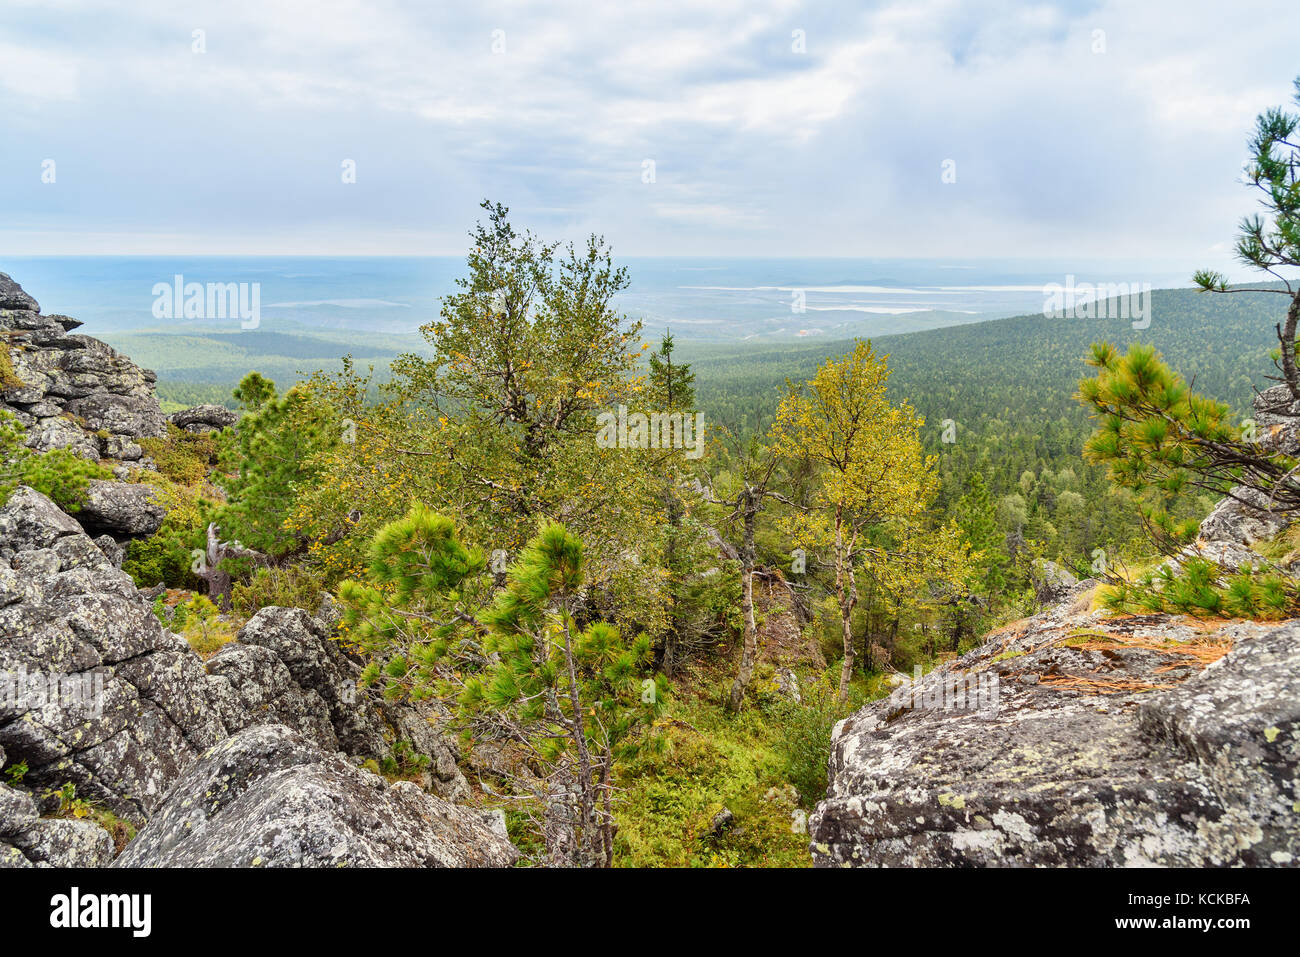 Mount Kachkanar (Middle Ural): geographical location, flora and fauna, Buddhist monastery 5